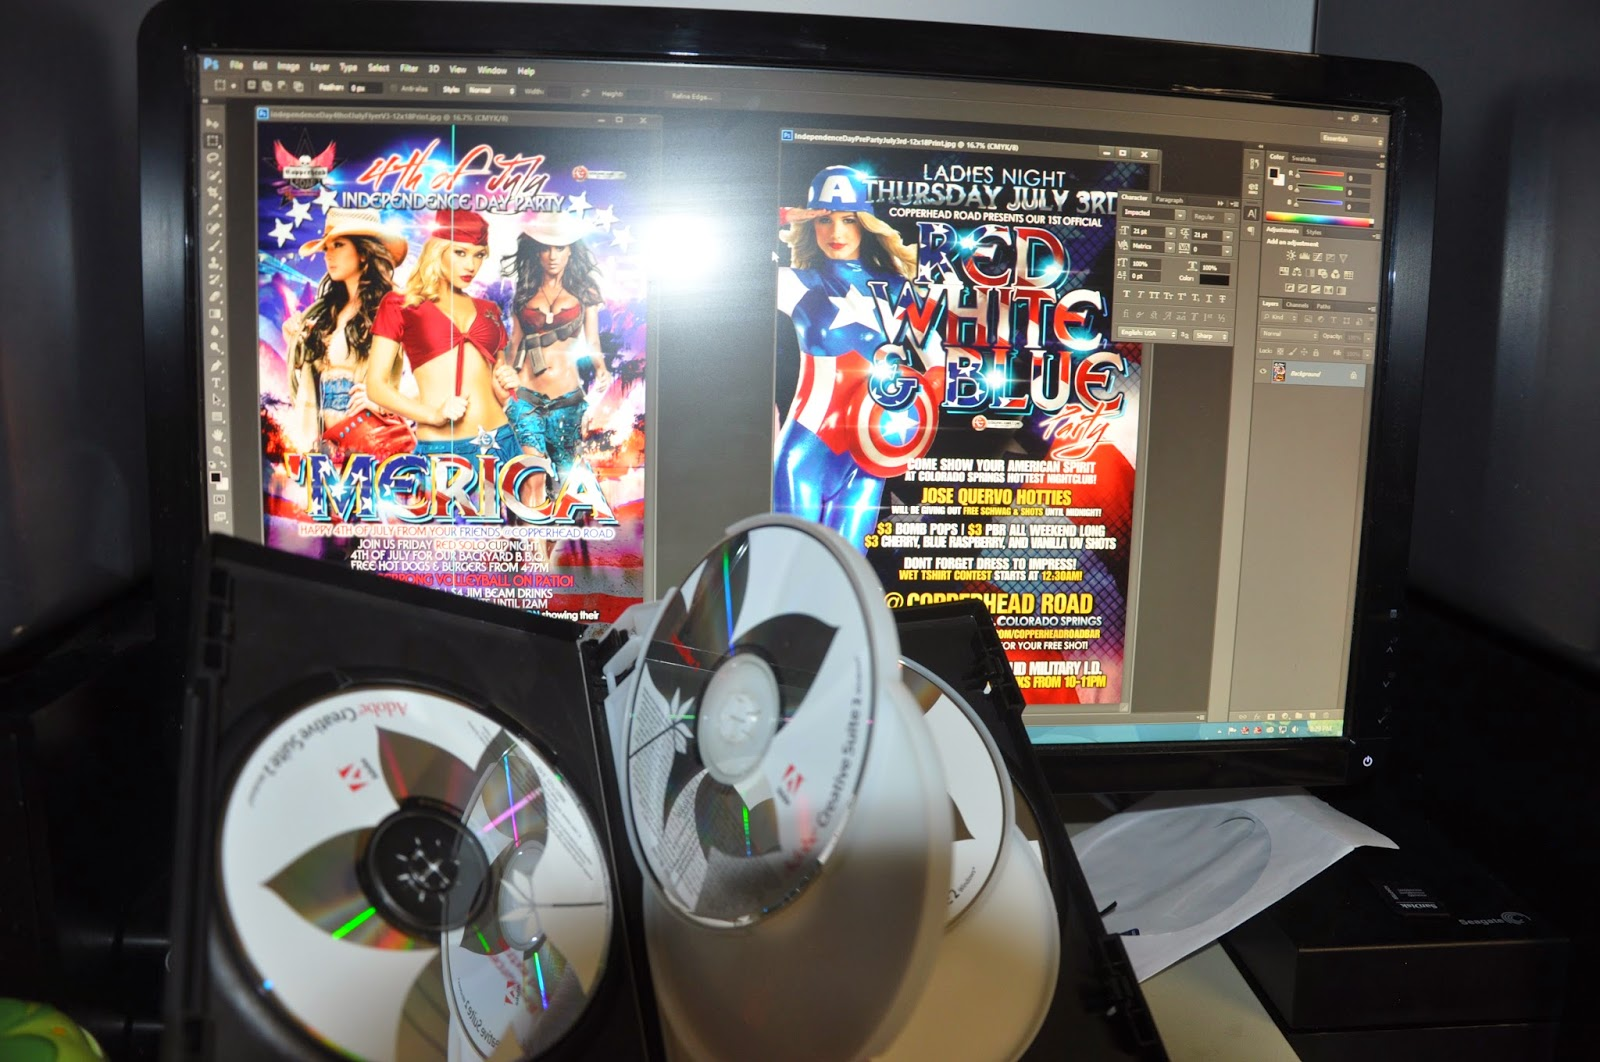 July 4th flyer design and adobe creative suite 2 CS2 Installation CDs